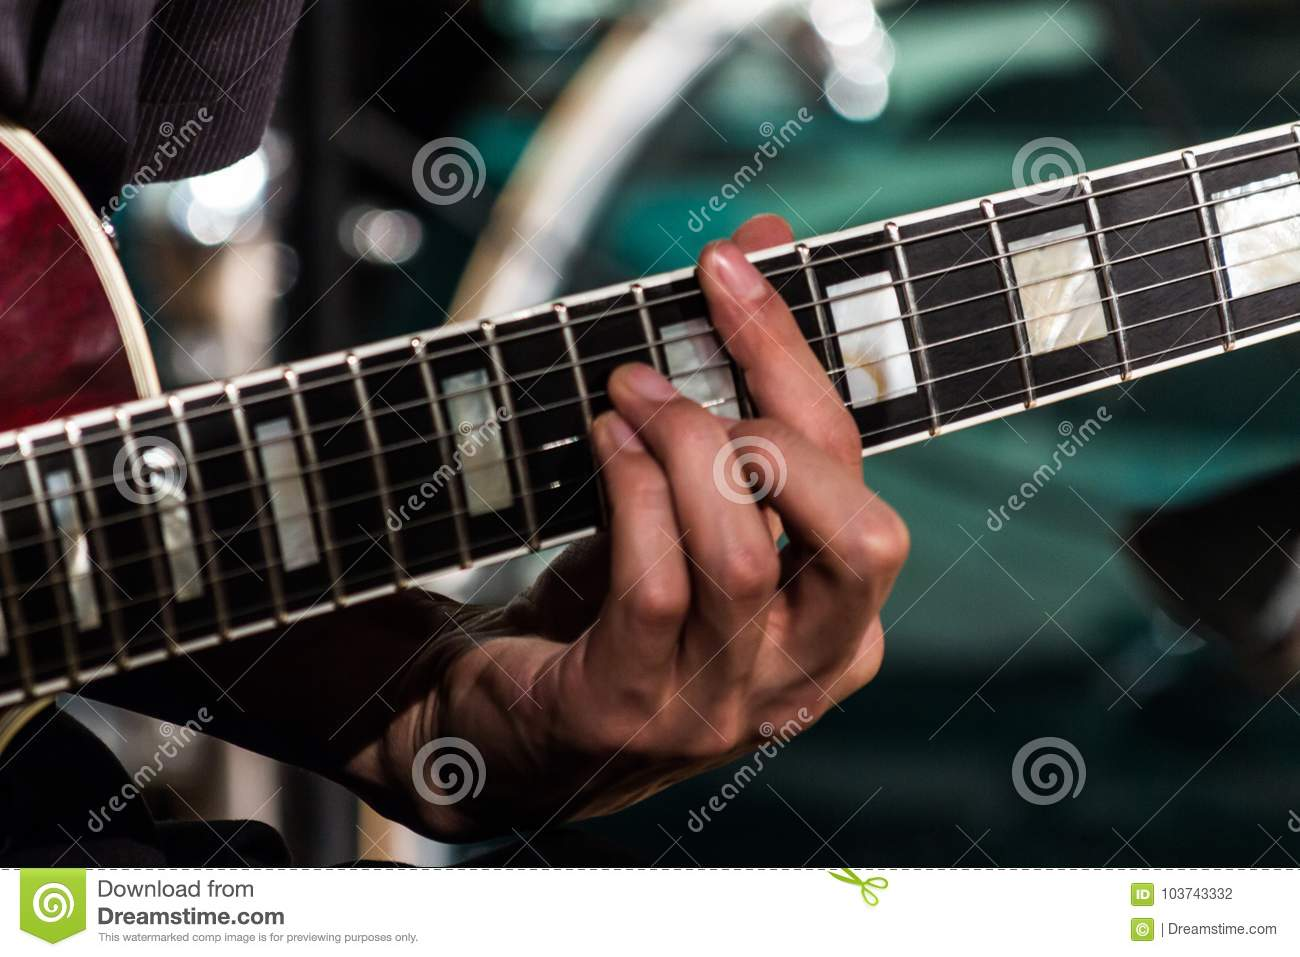 The Guitarist Clamped The Chord On The Electric Guitar Fretboard